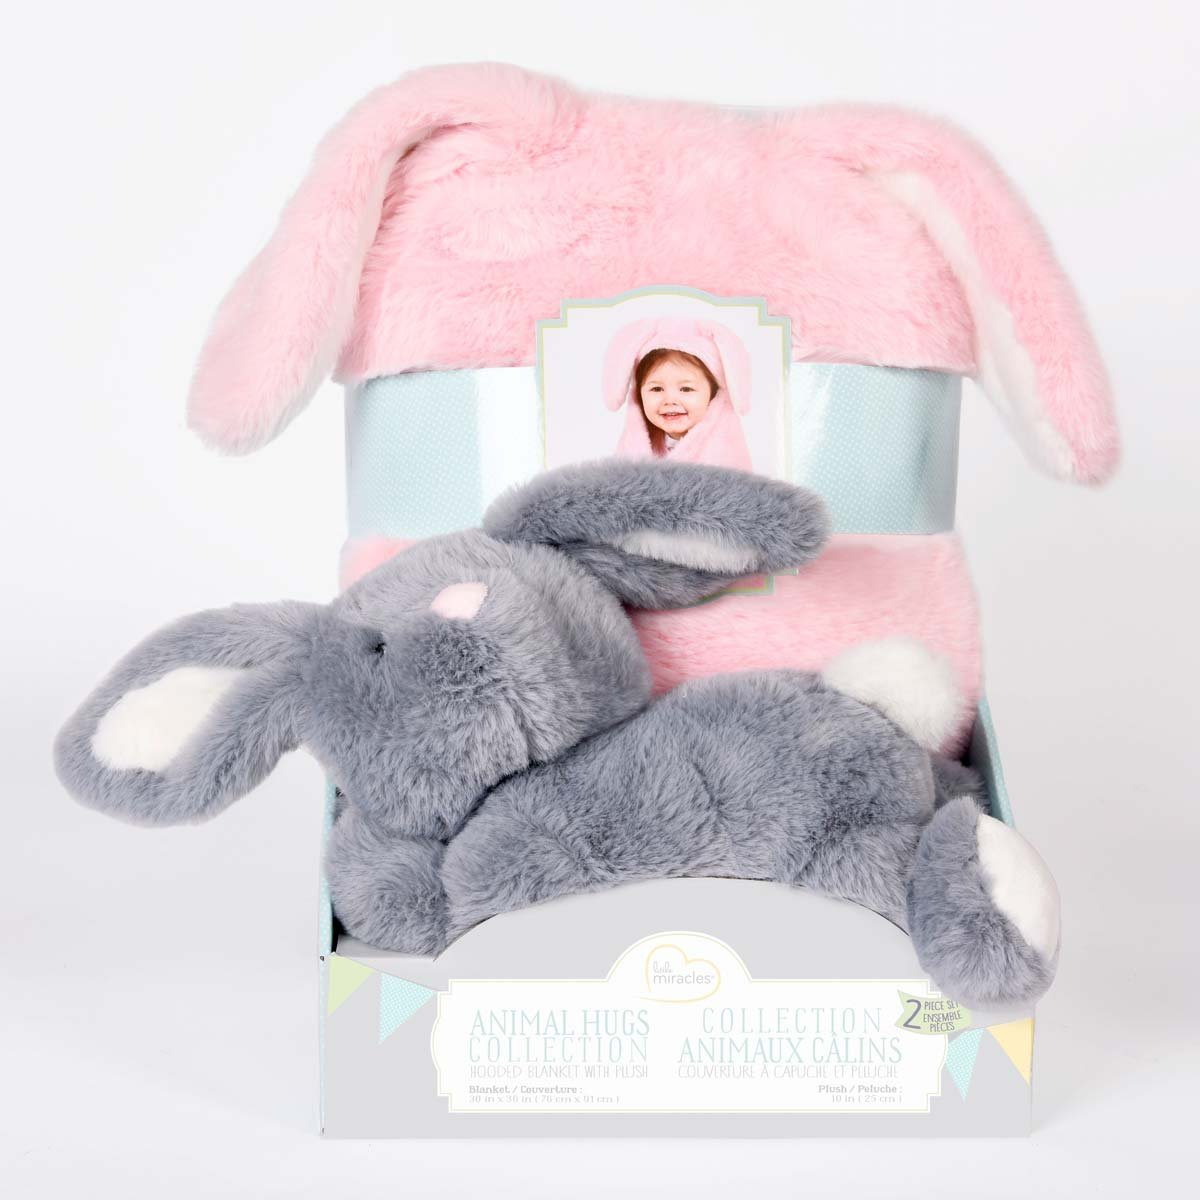 Animal Hugs Collection Hooded Blanket with Plush Bunny